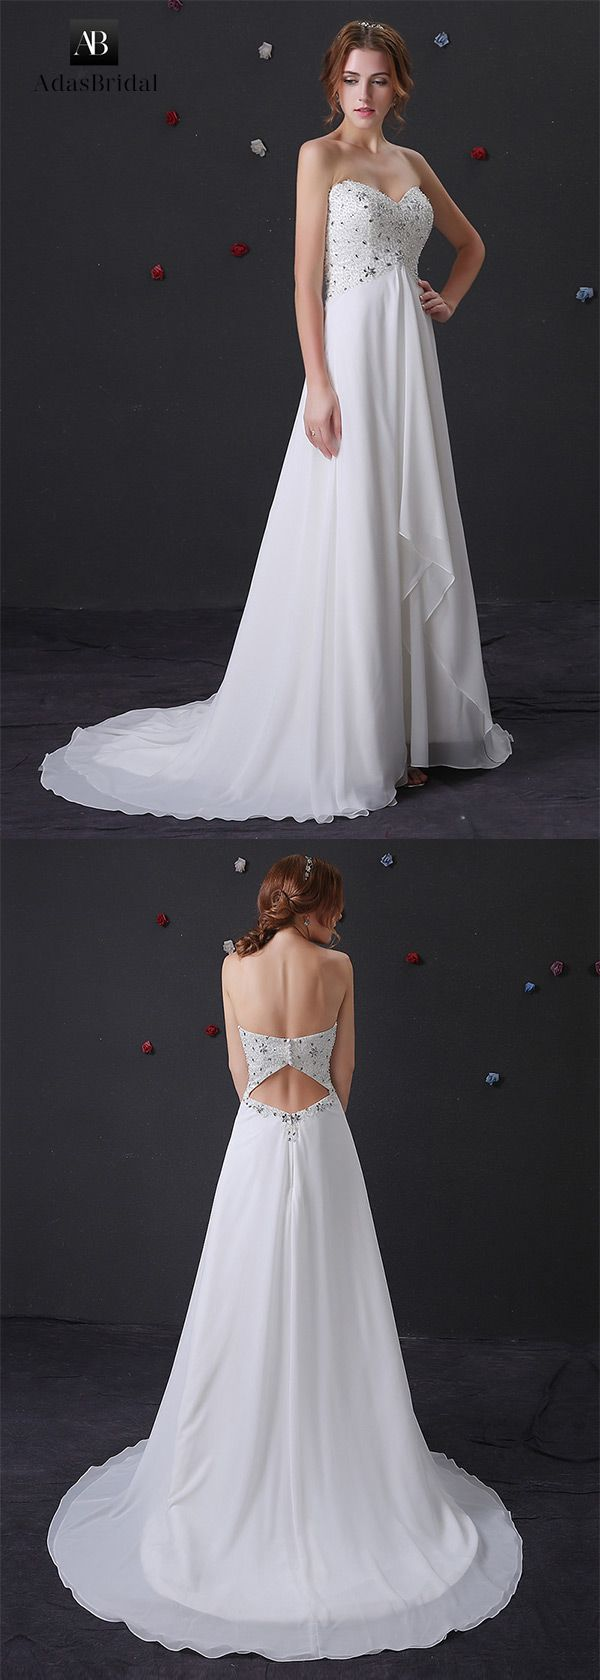 Charming chiffon sweetheart neckline empire wedding dress